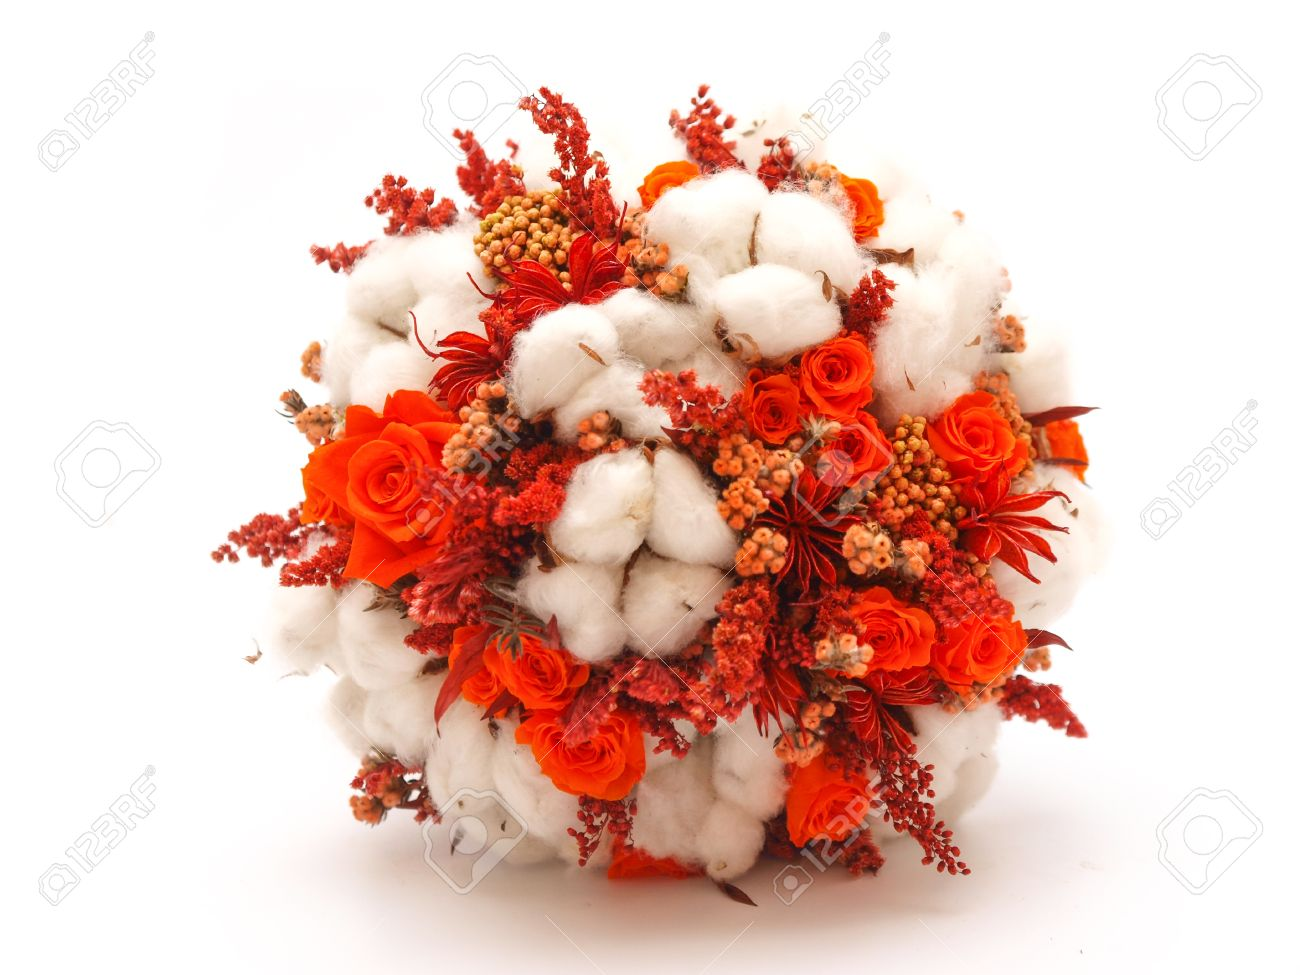 Preserved Flowers And Cotton Wedding Bouquet On White Background ...